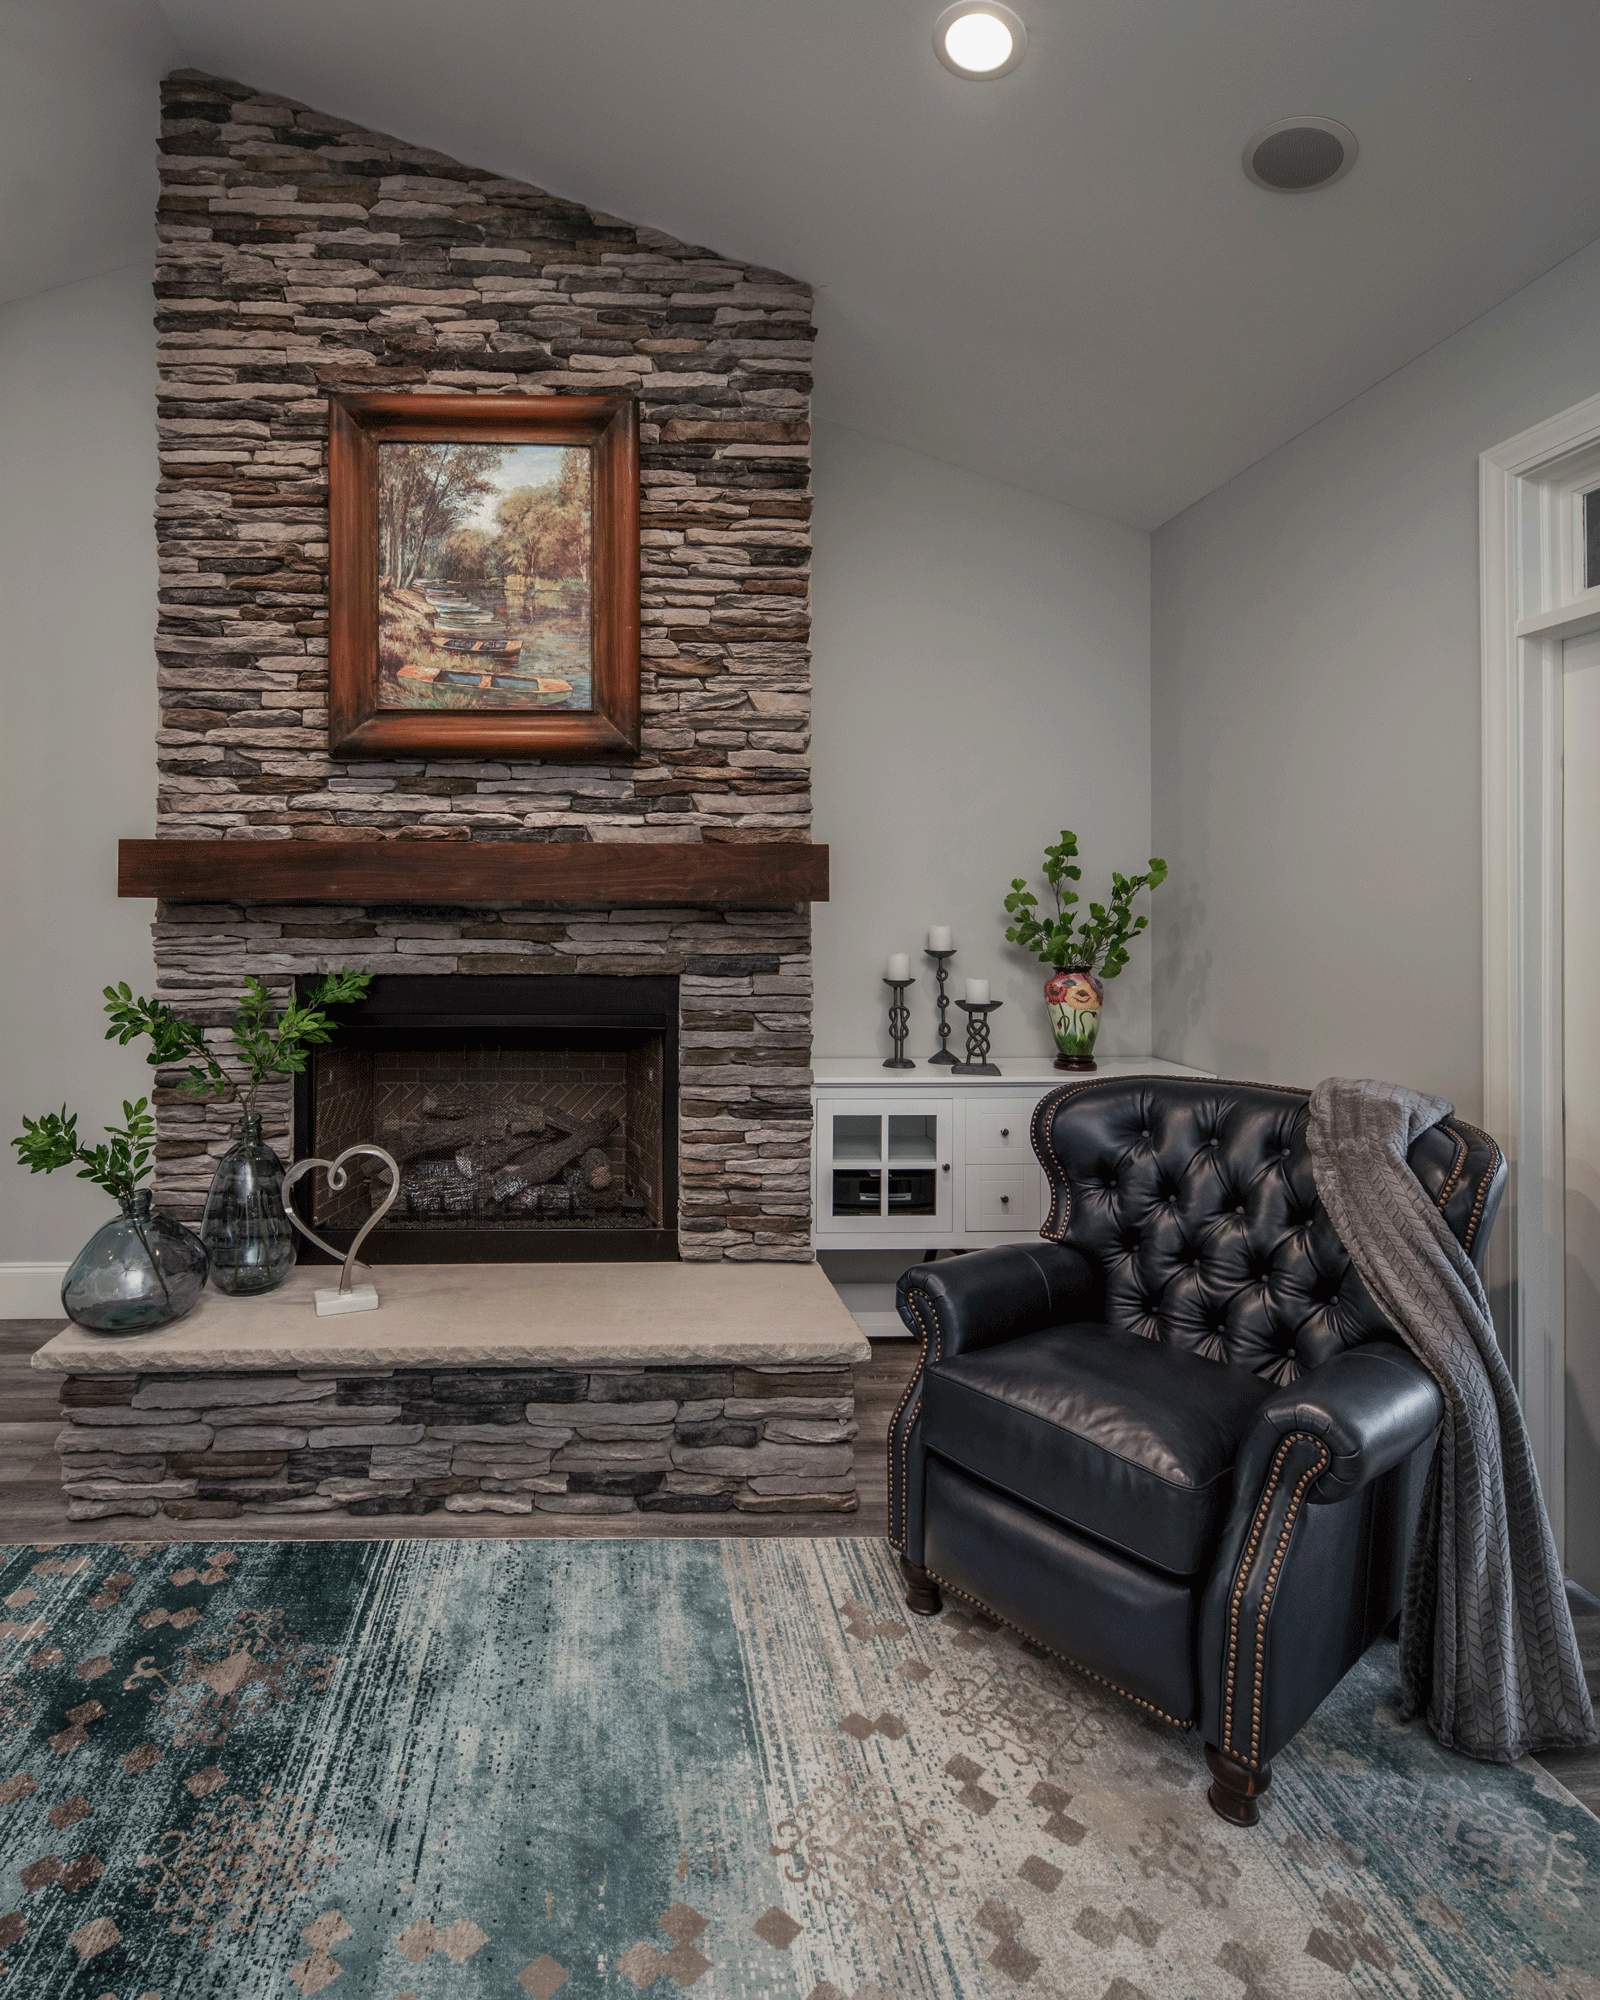 interior design for living room with flooring, furniture, seating, lighting, wall artwork, fireplace, and decor